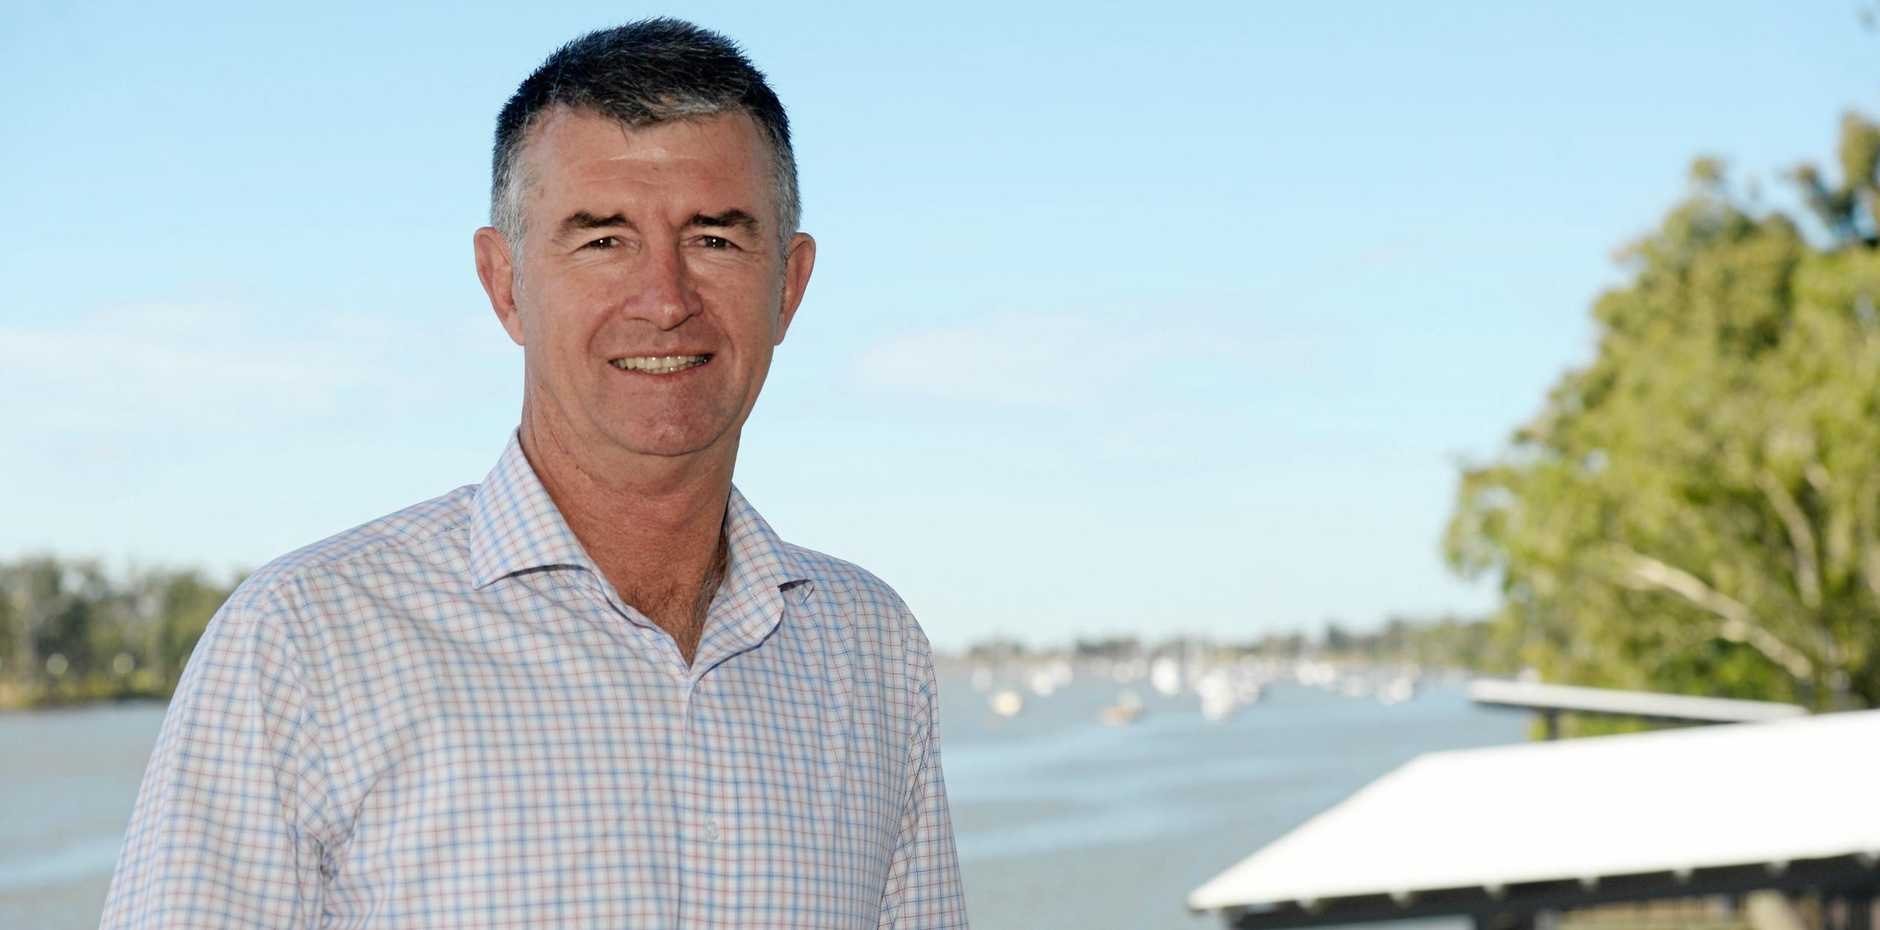 REBUILDING PHASE: LNP's Deputy Leader Tim Mander is not daunted by the challenge of earning trust in opposition.